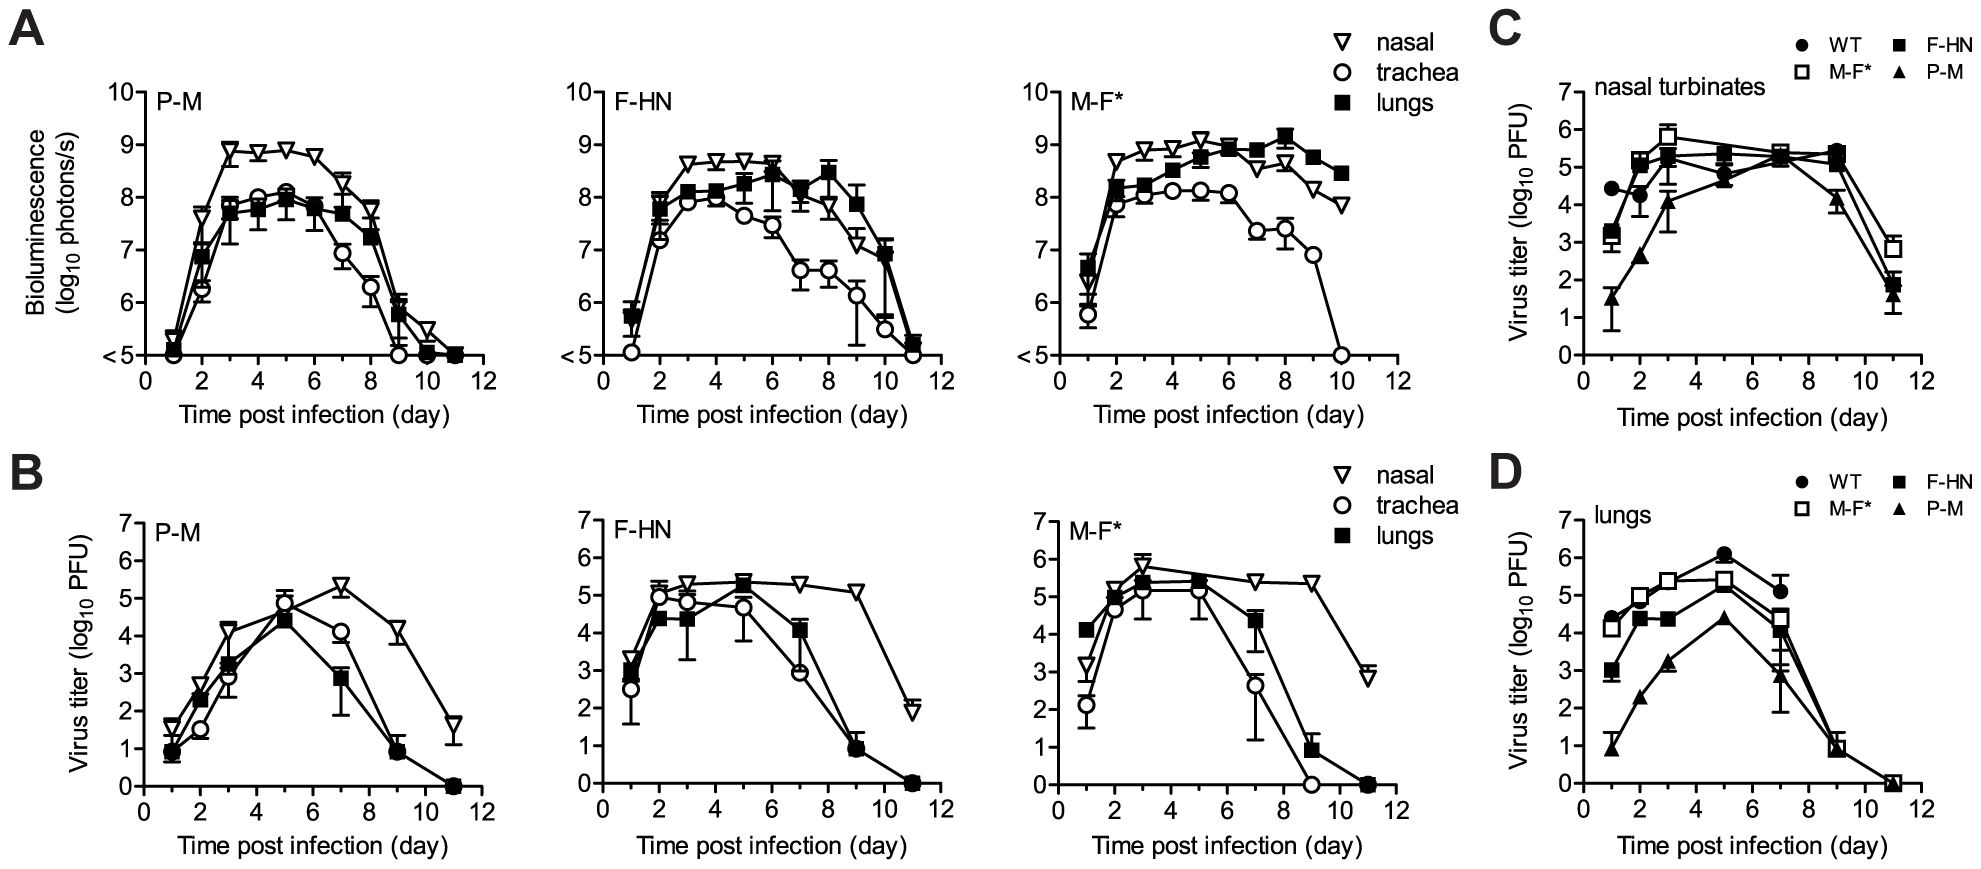 Kinetics of Sendai virus spread and clearance in the respiratory tracts of 129/SvJ mice.